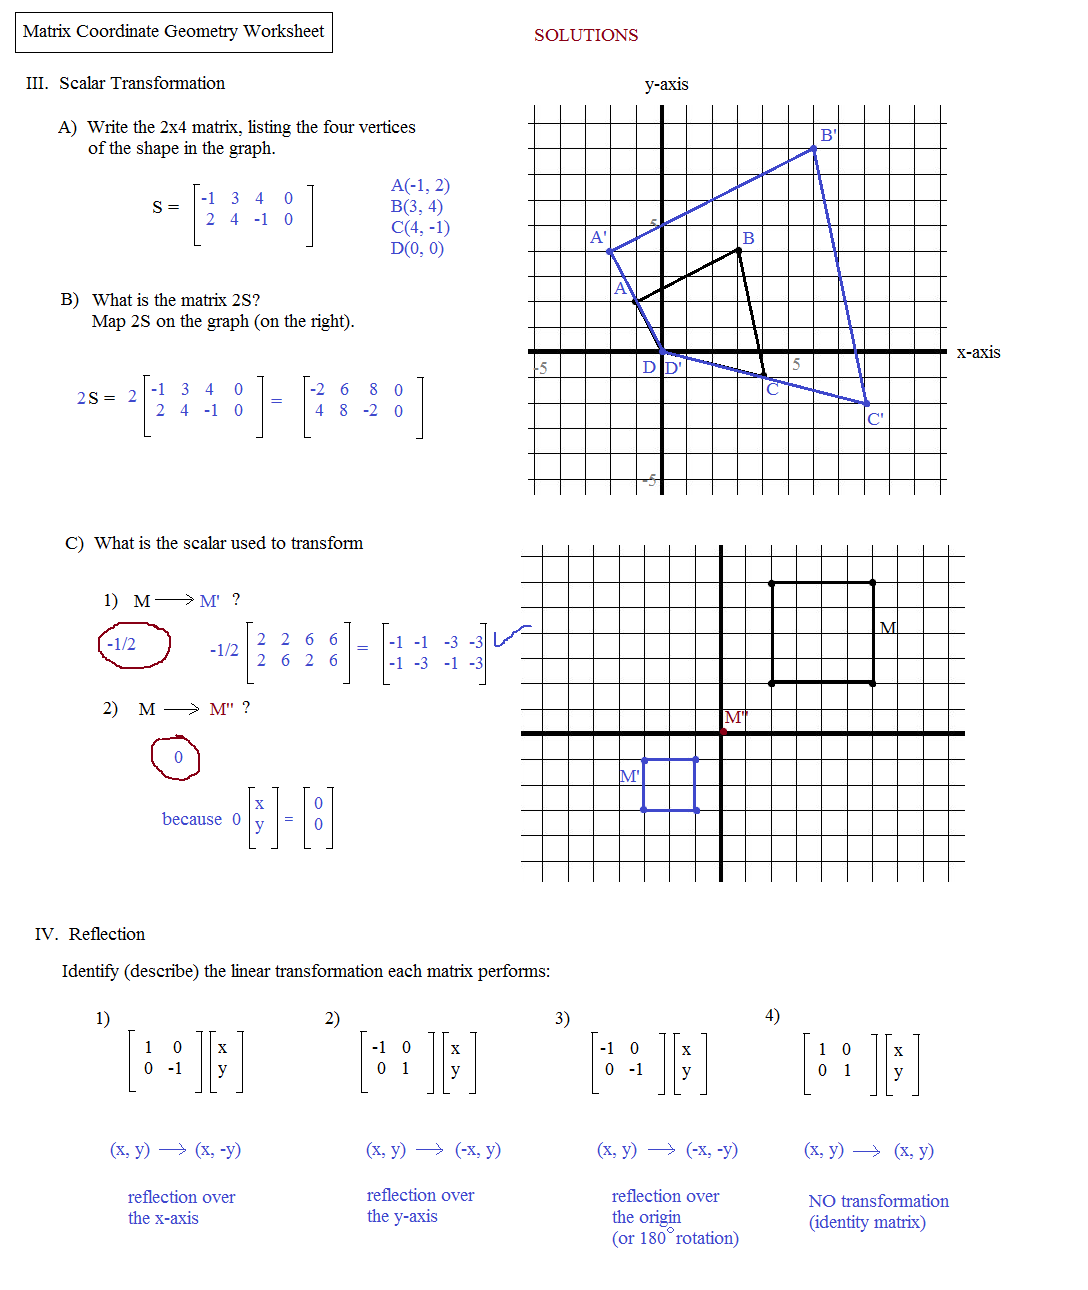 Worksheets Coordinate Plane Worksheets Middle School math plane matrix iii coordinate geometry worksheet 2 solutions